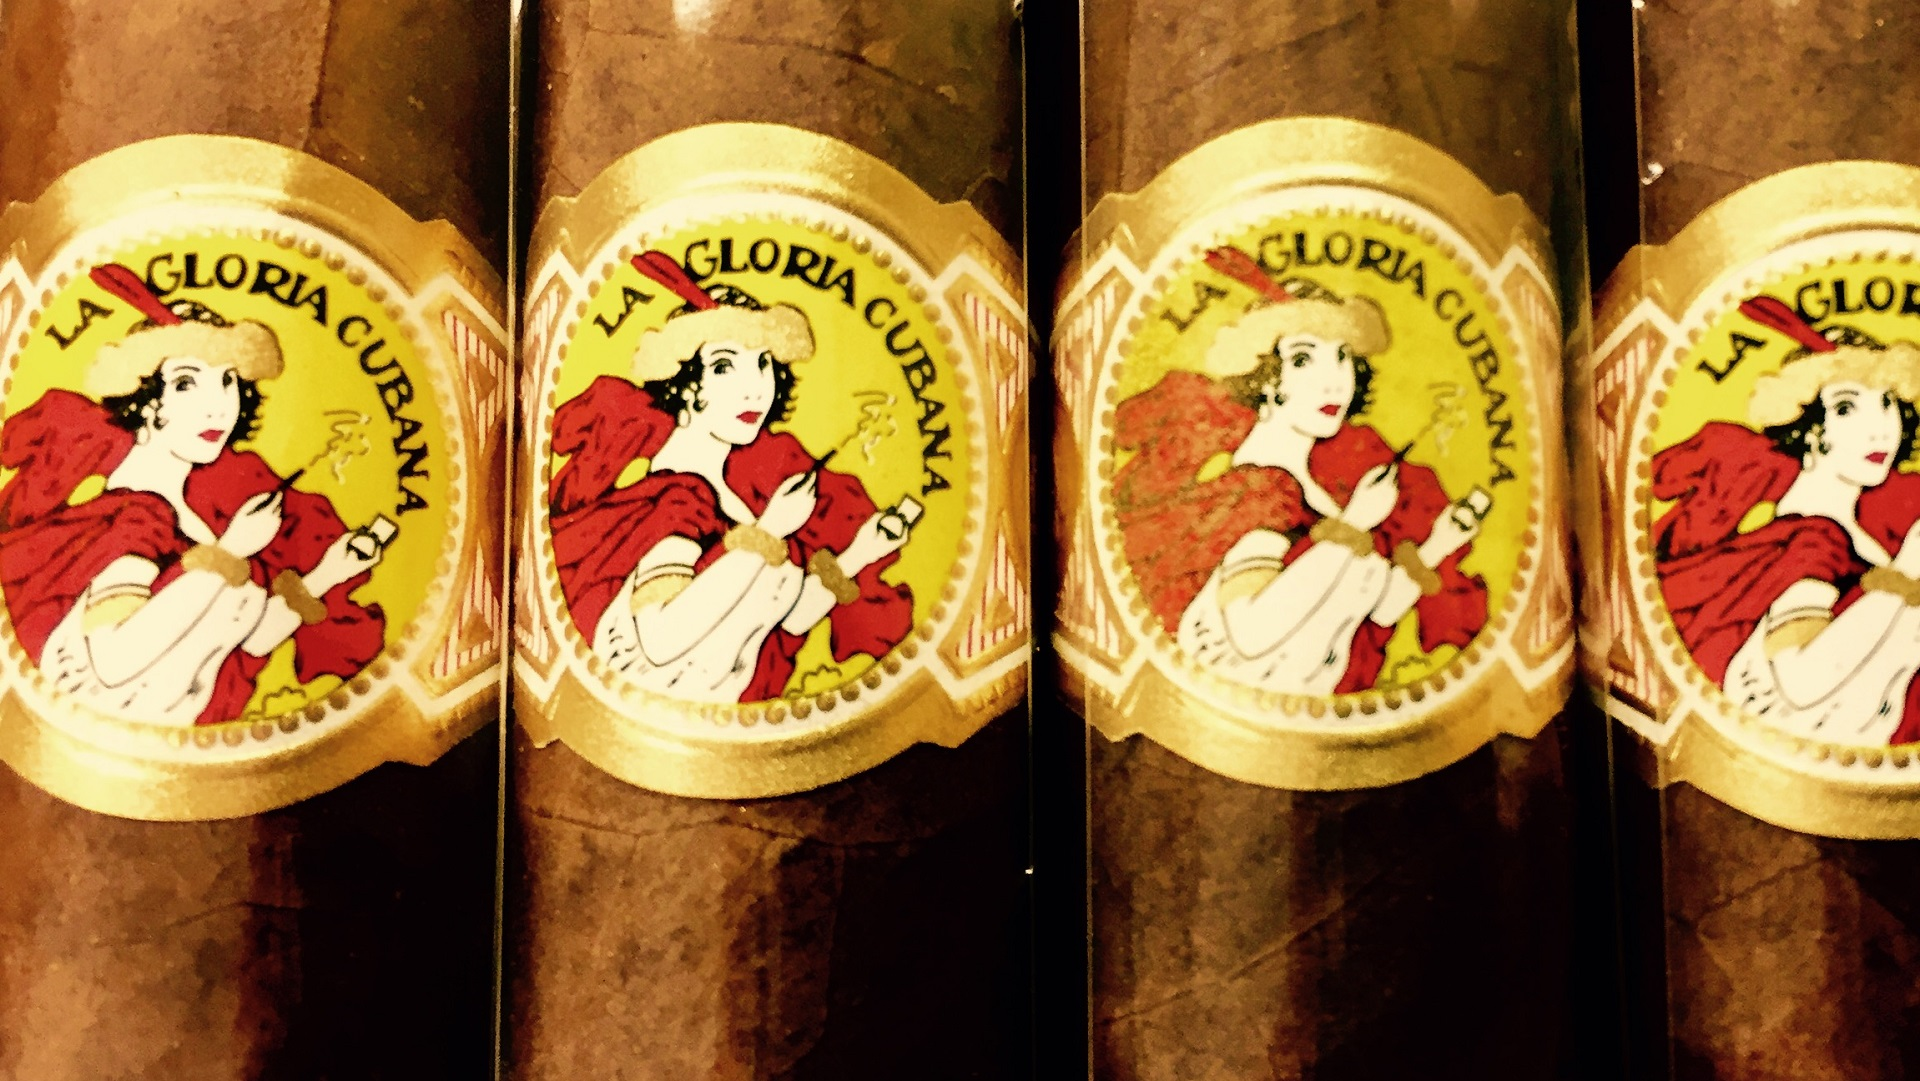 La Gloria Cubana Churchill - 5 Pack image